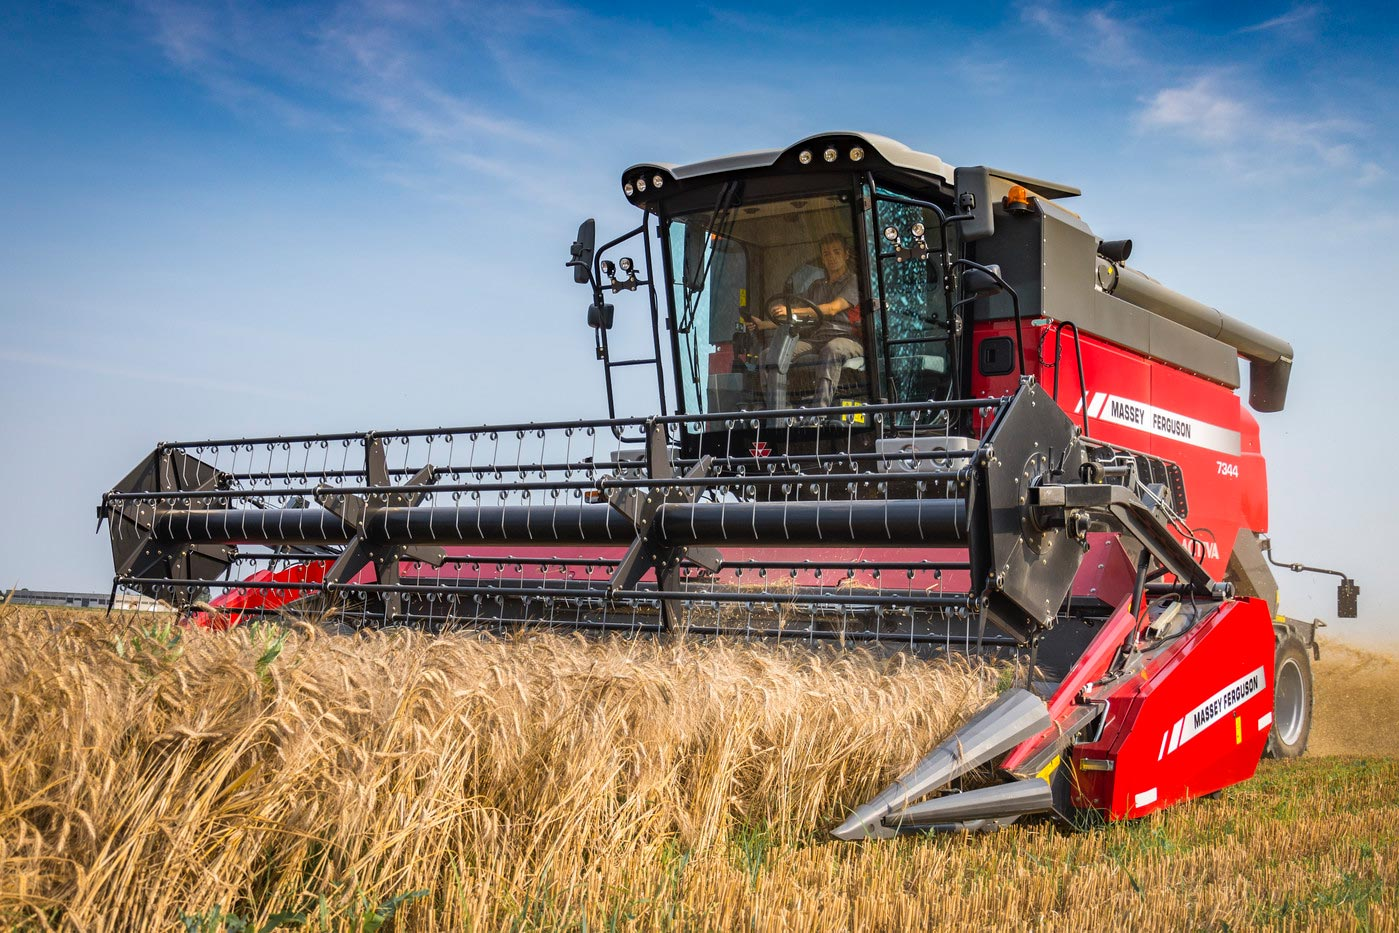 Threshing quality at the heart of the combine